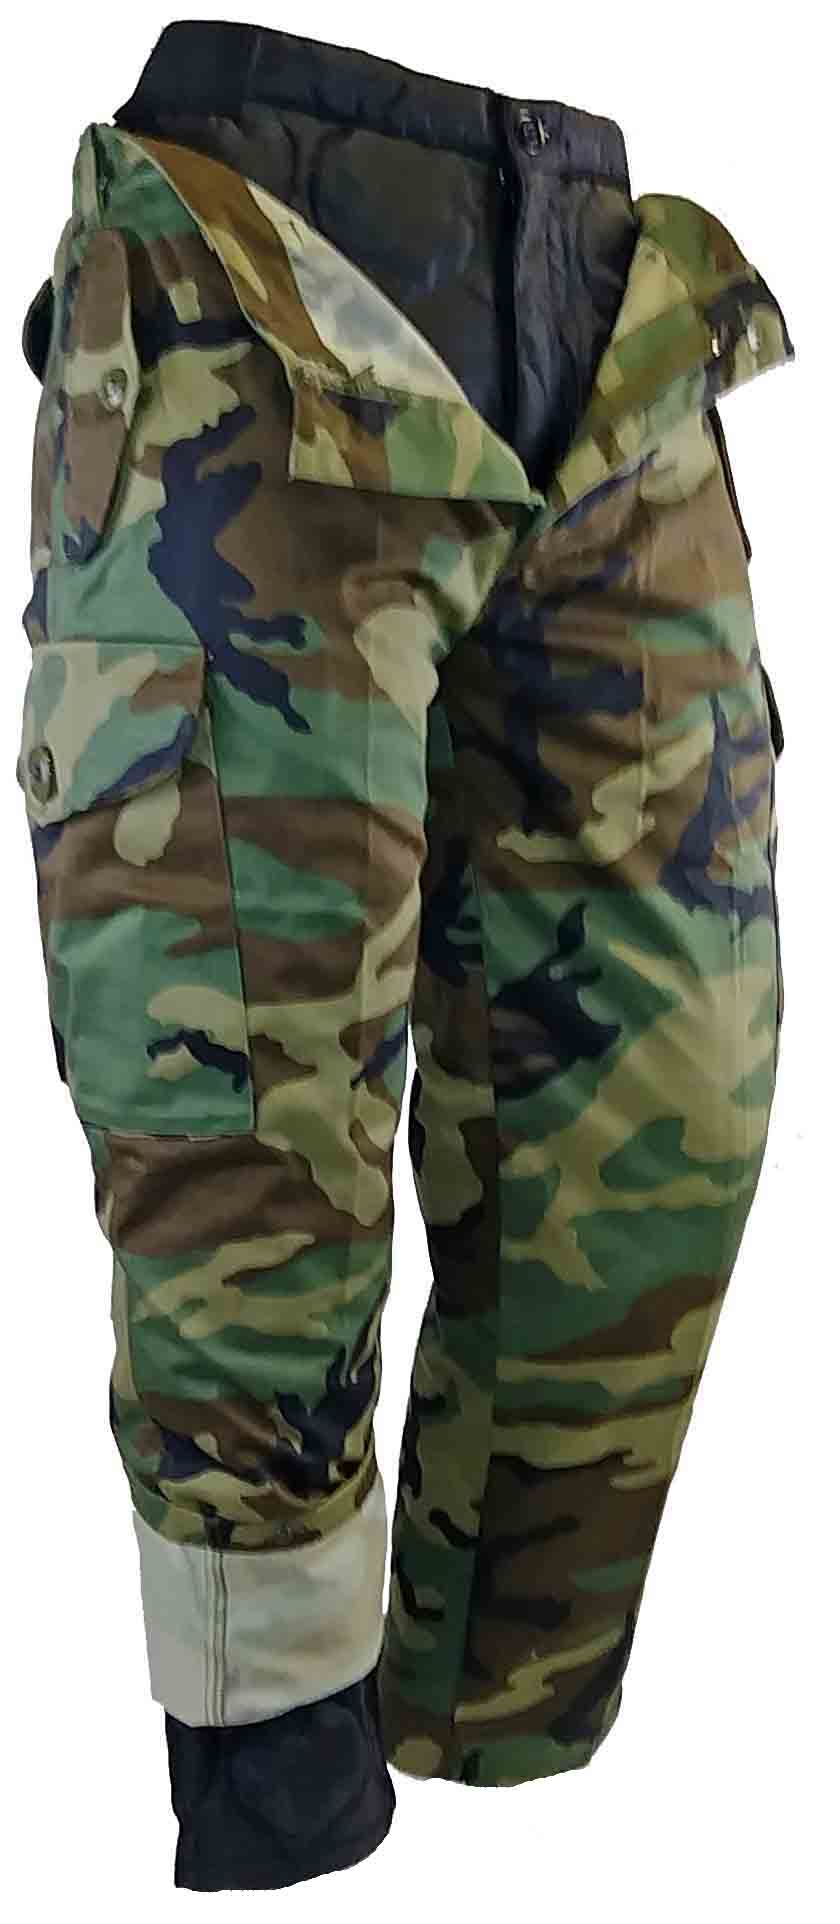 Woodland combat style winter pant